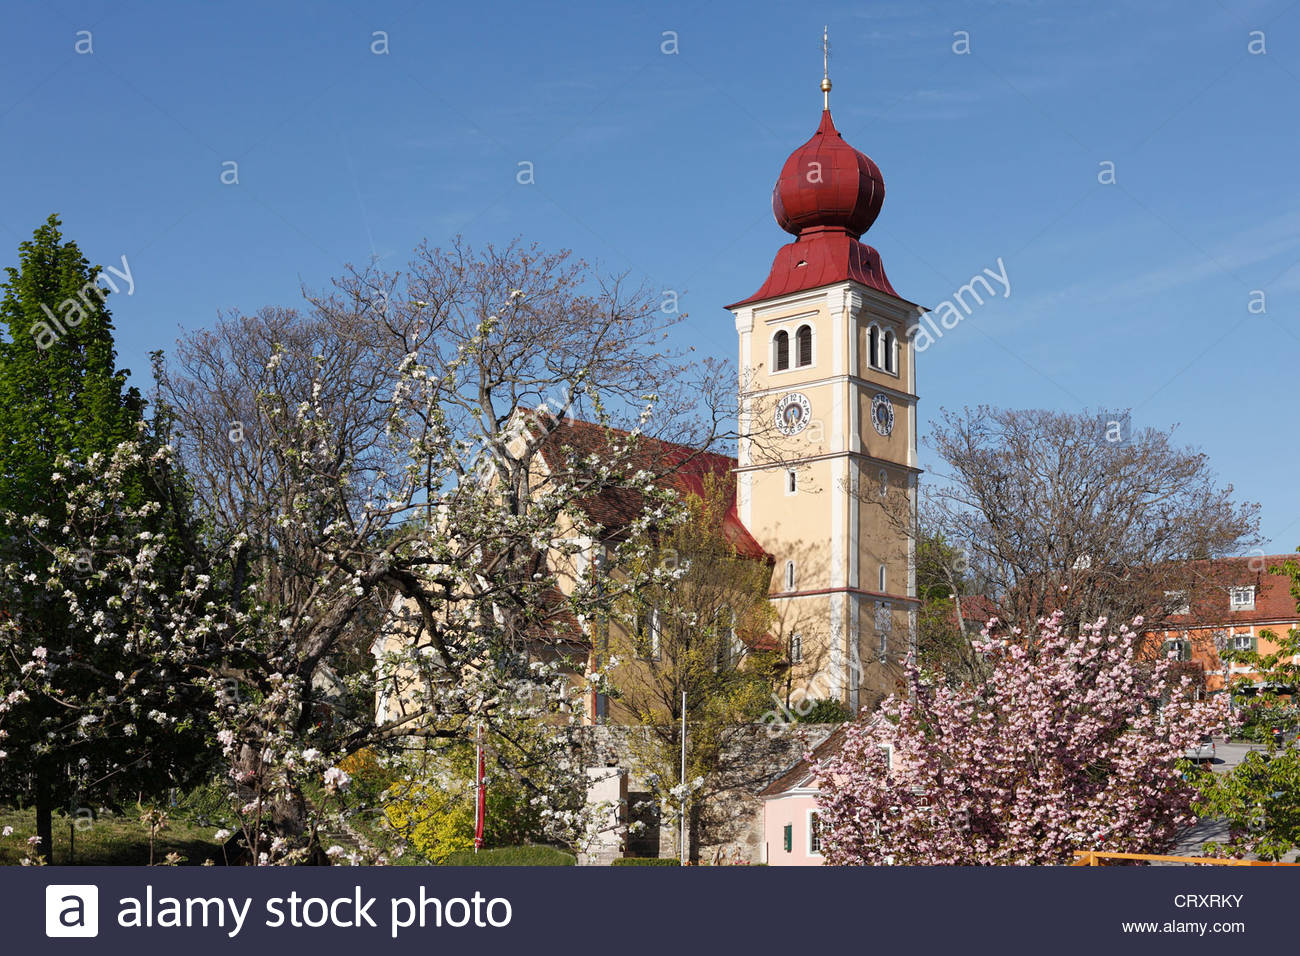 Austria, Styria, Church at Puch bei Weiz - Stock Image